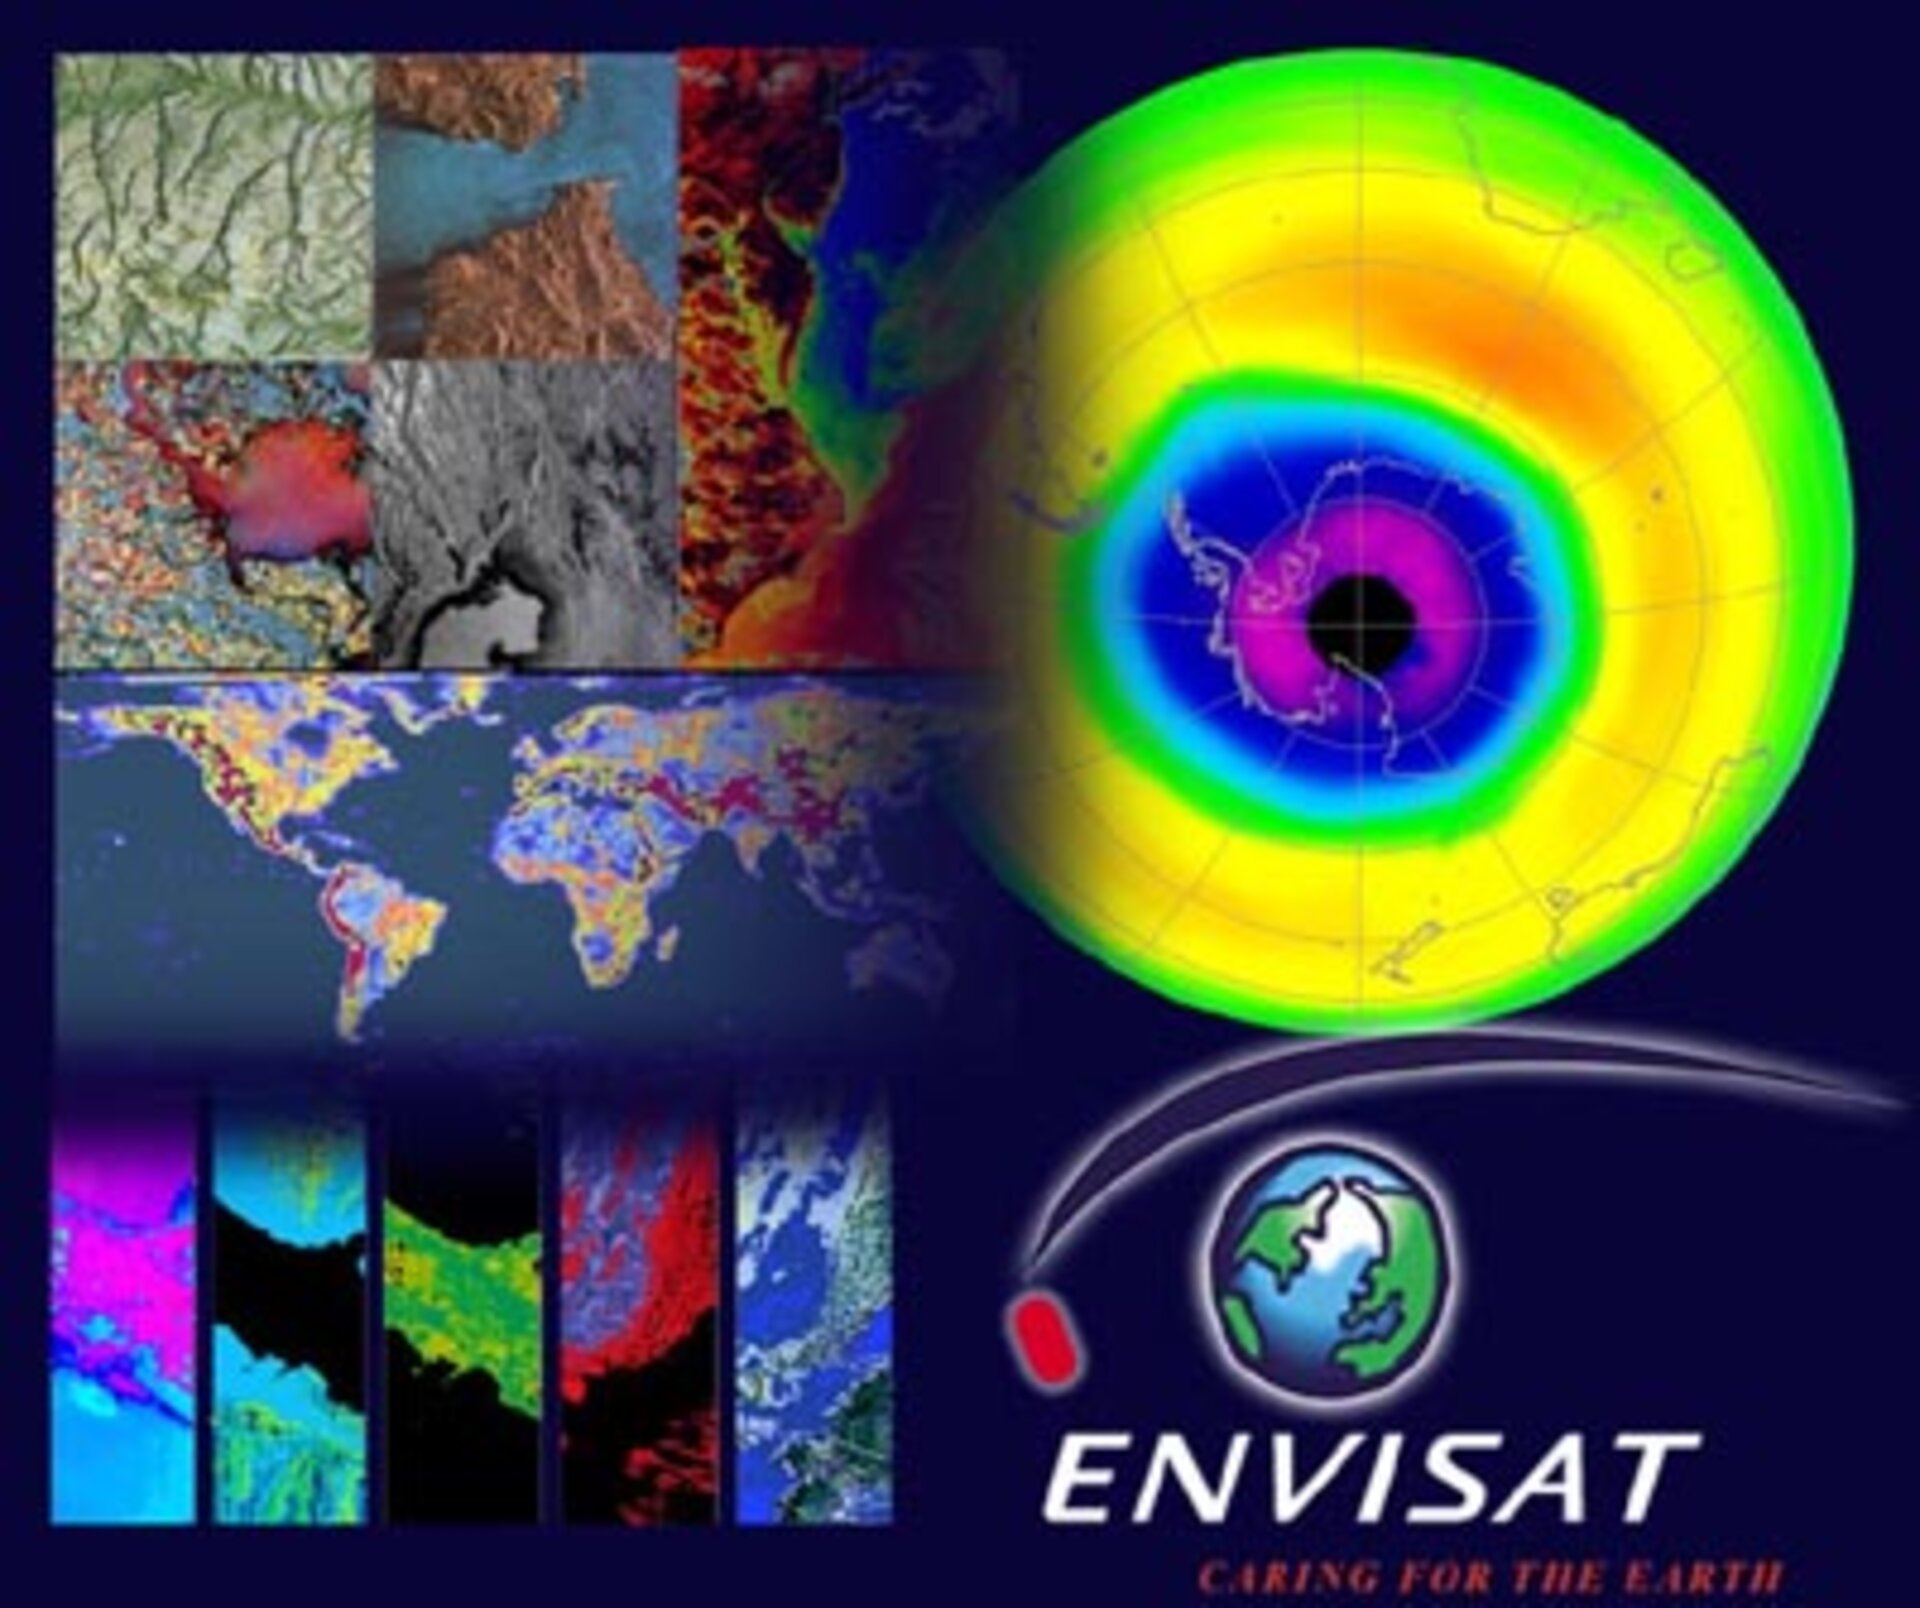 Envisat will be launched at the end of February